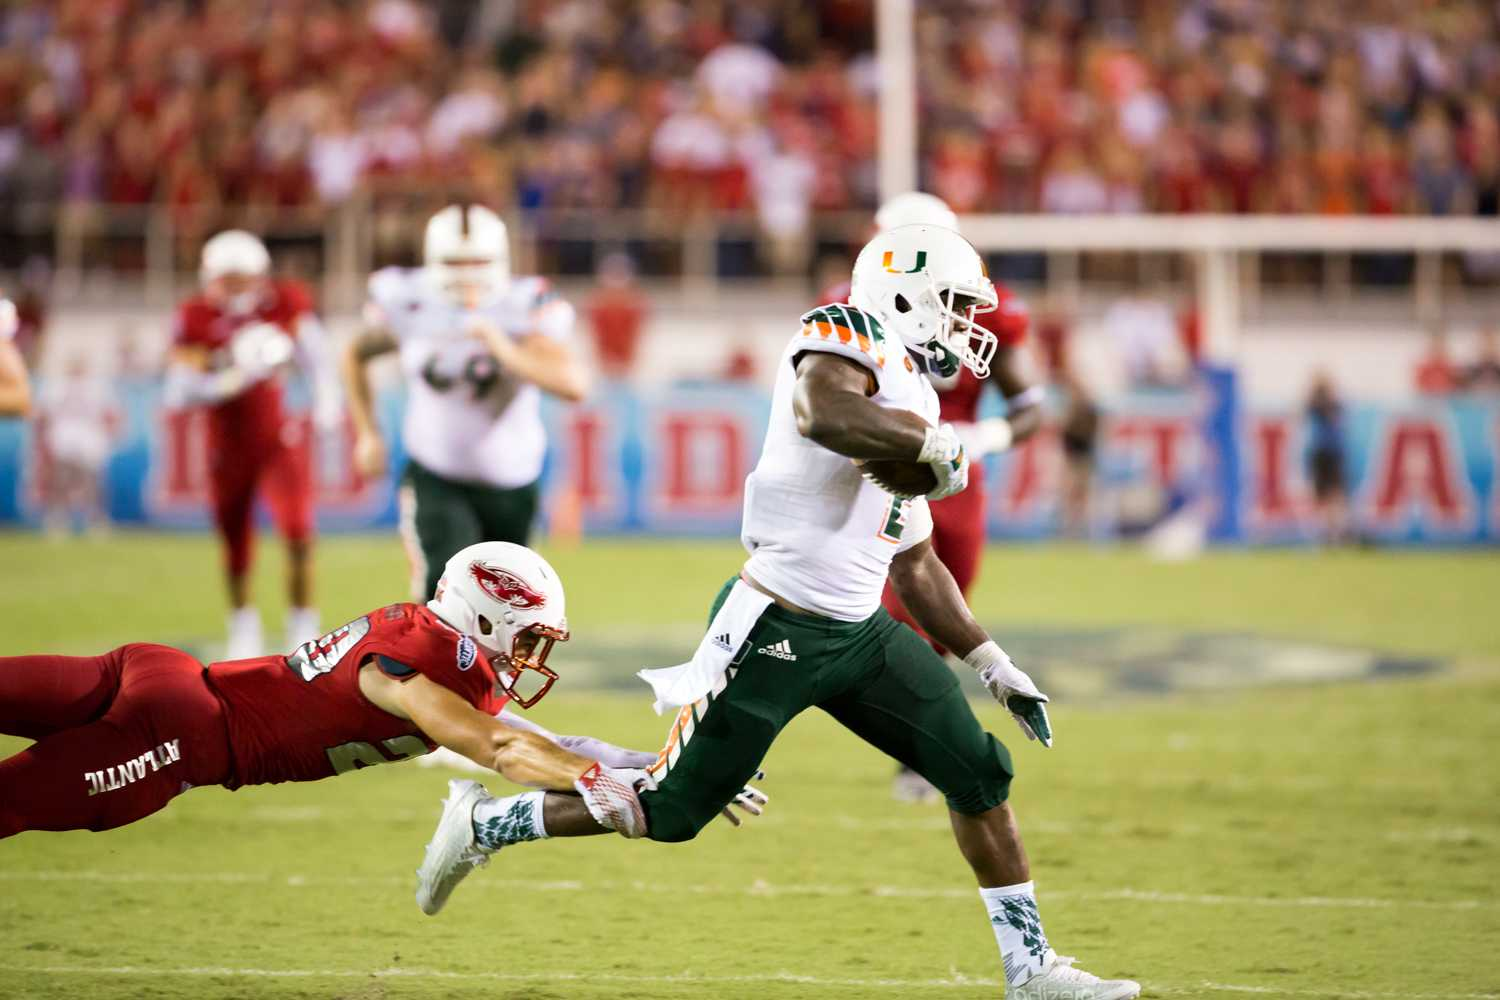 FAU redshirt freshman defensive back Jake Stoshak (20) dives to stop UM sophomore running back Joseph Yearby (2) early in the first quarter Friday night. Stoshak ended the game with 10 tackles. Brandon Harrington | Contributing Photographer